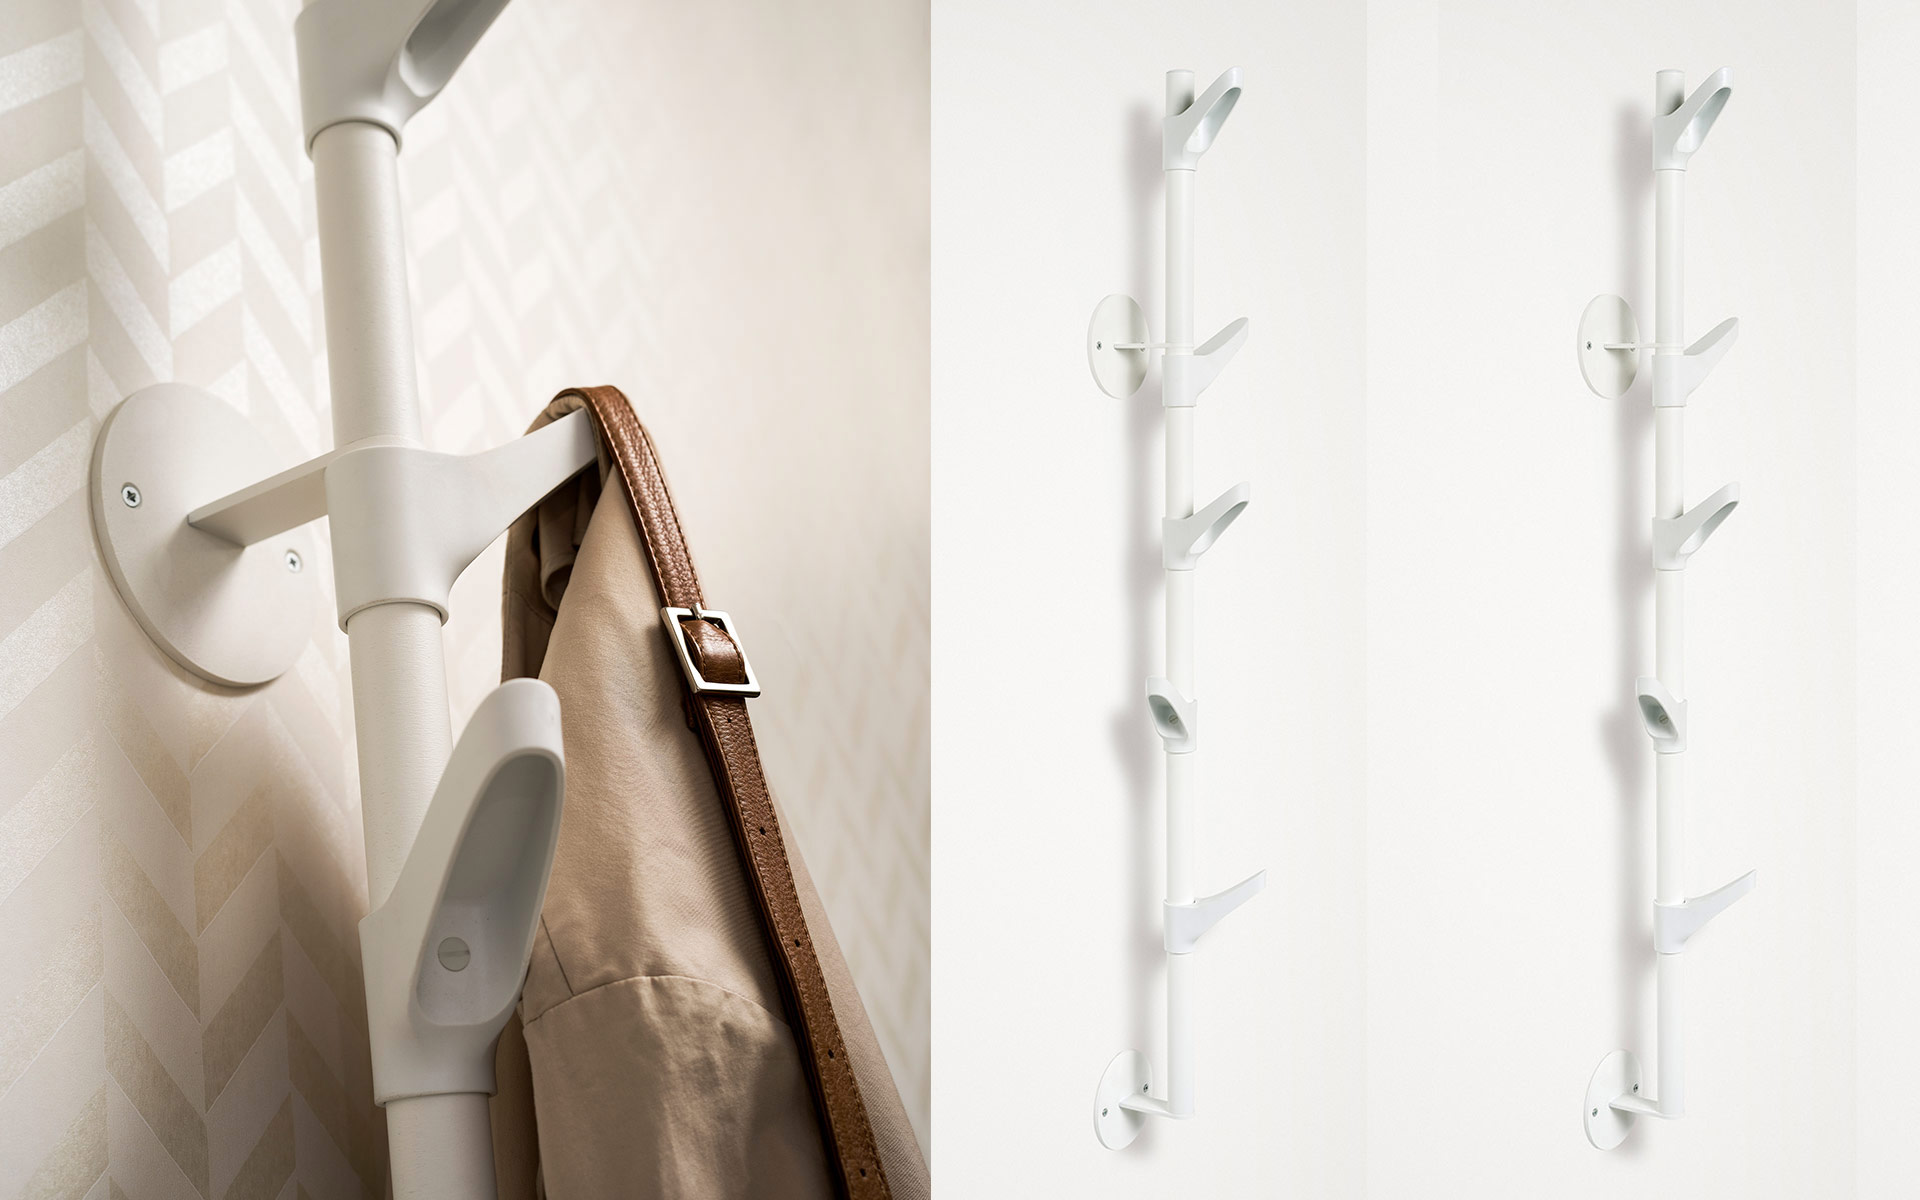 Slide W Wall Mounted Hook Strip